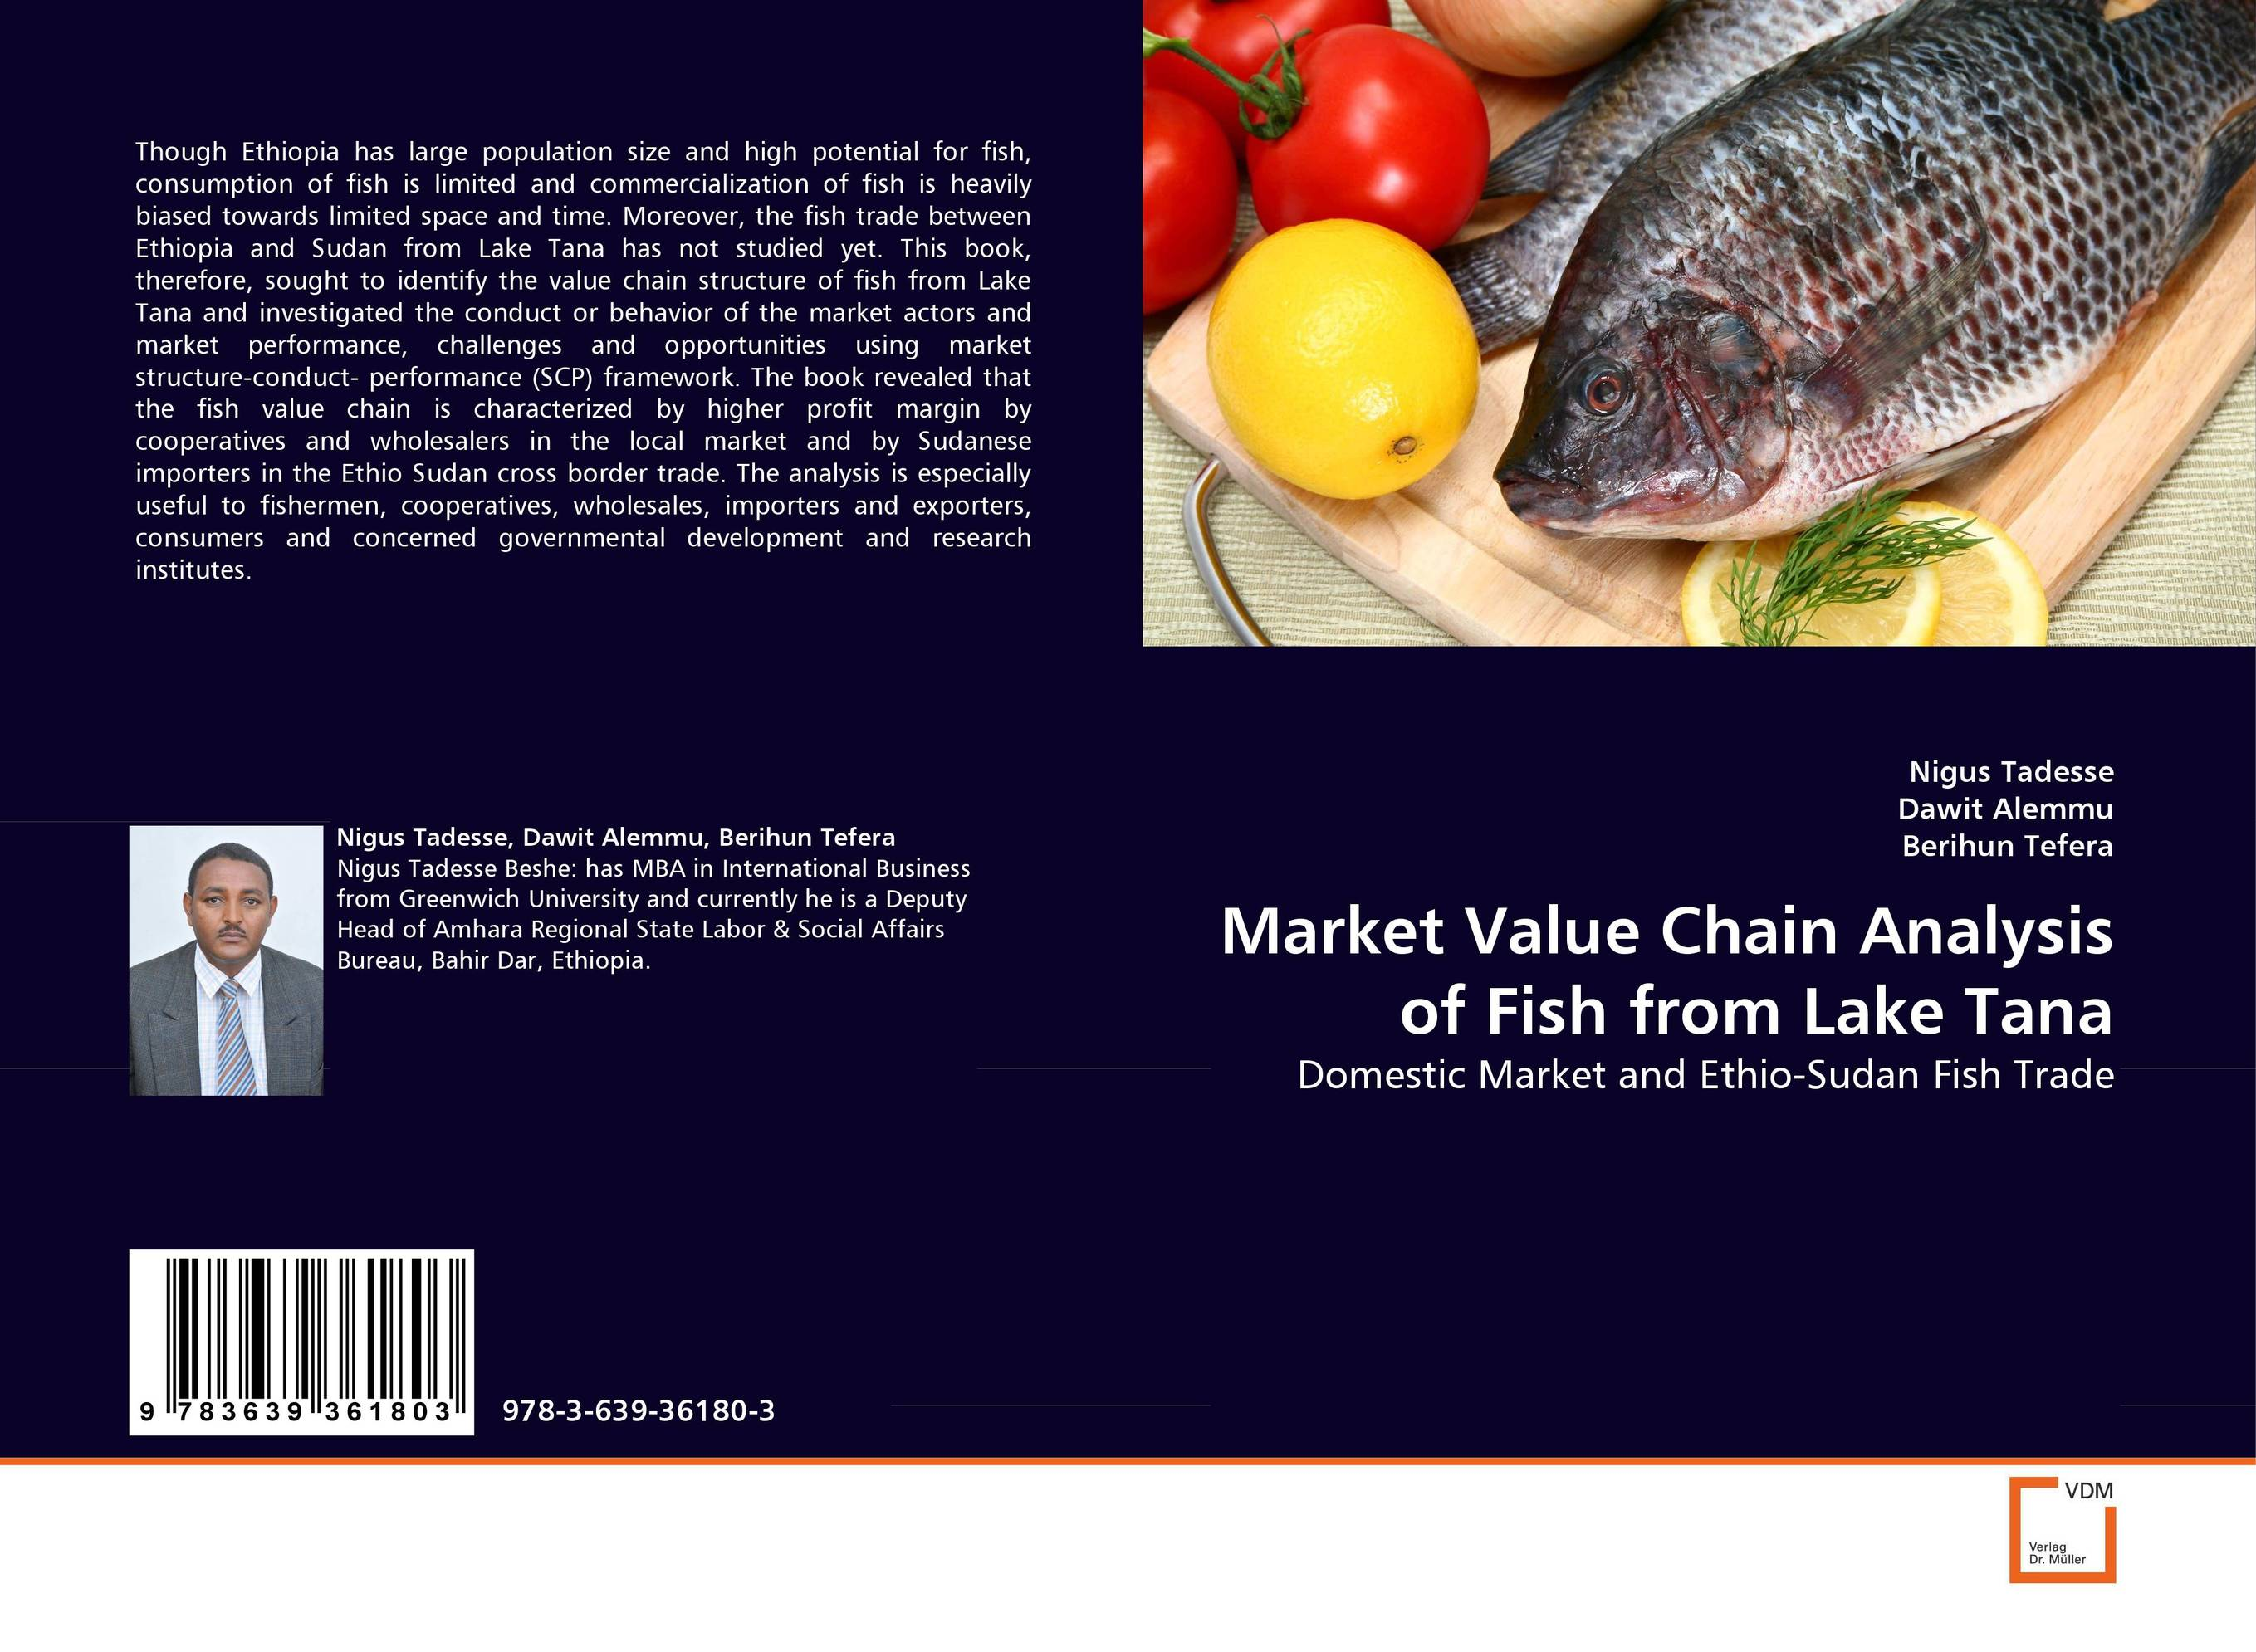 Market Value Chain Analysis of Fish from Lake Tana richard lehman far from random using investor behavior and trend analysis to forecast market movement